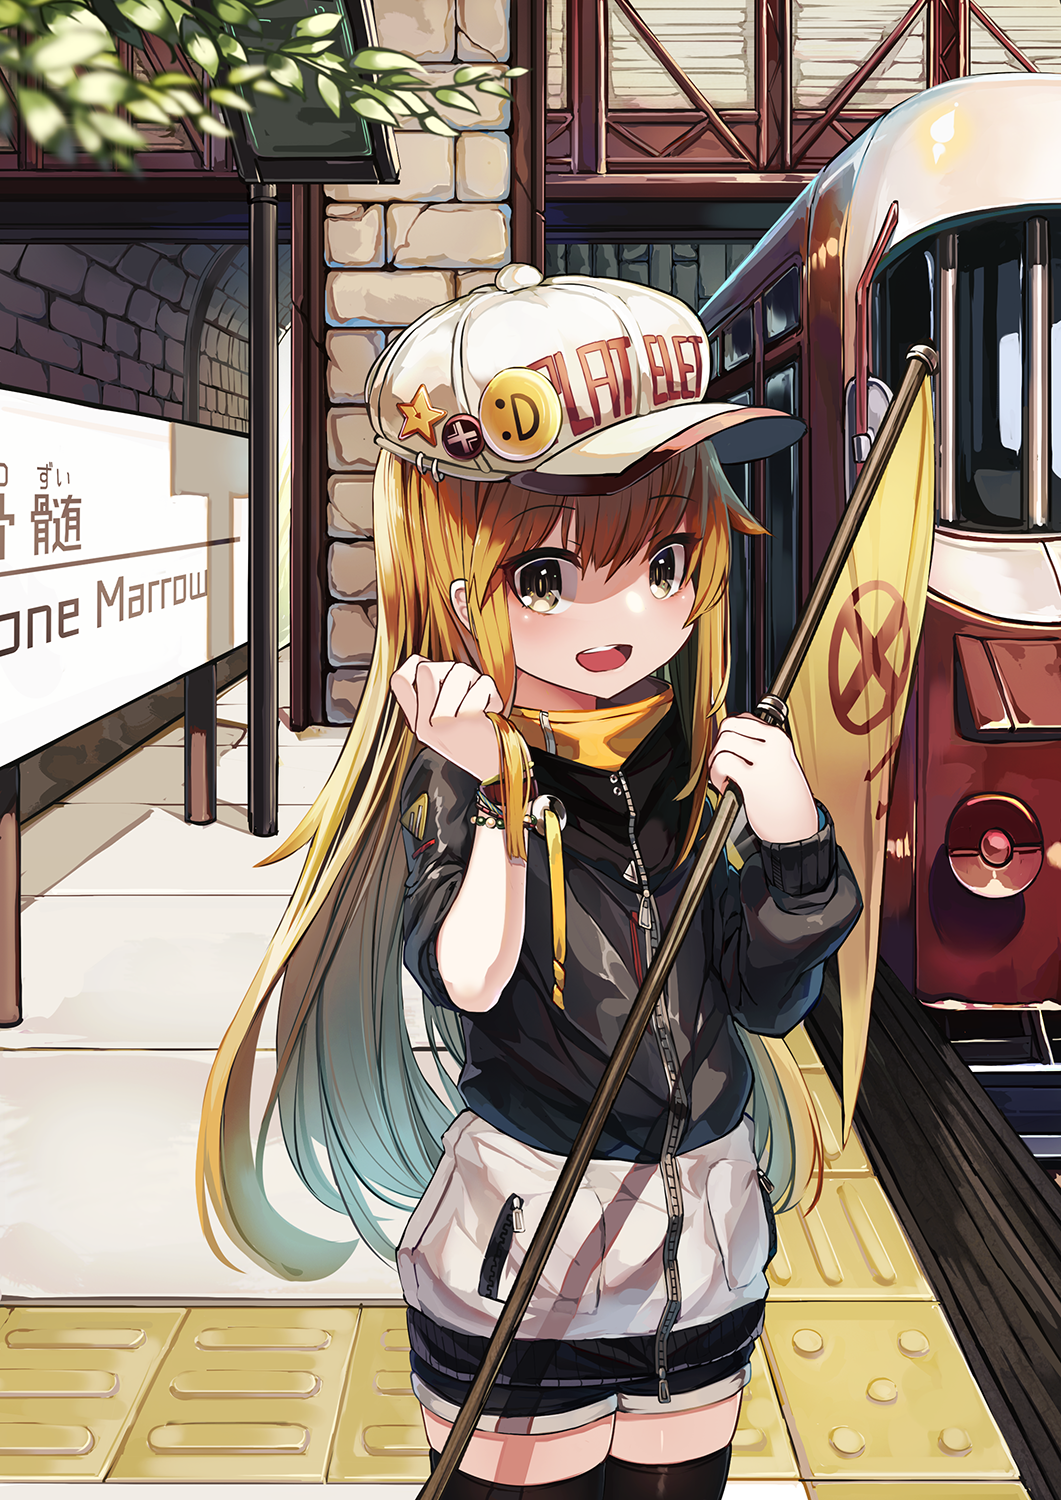 1girl :d alternate_costume bangs black_jacket black_legwear black_shorts blush brown_eyes brown_hair casual character_name clothes_writing commentary_request english eyebrows_visible_through_hair flat_cap ground_vehicle hair_between_eyes hands_up hat hataraku_saibou highres jacket long_hair long_sleeves looking_at_viewer natori_youkai open_mouth platelet_(hataraku_saibou) round_teeth short_shorts shorts smile smiley_face solo standing star teeth thigh-highs train train_station translated upper_teeth very_long_hair white_hat